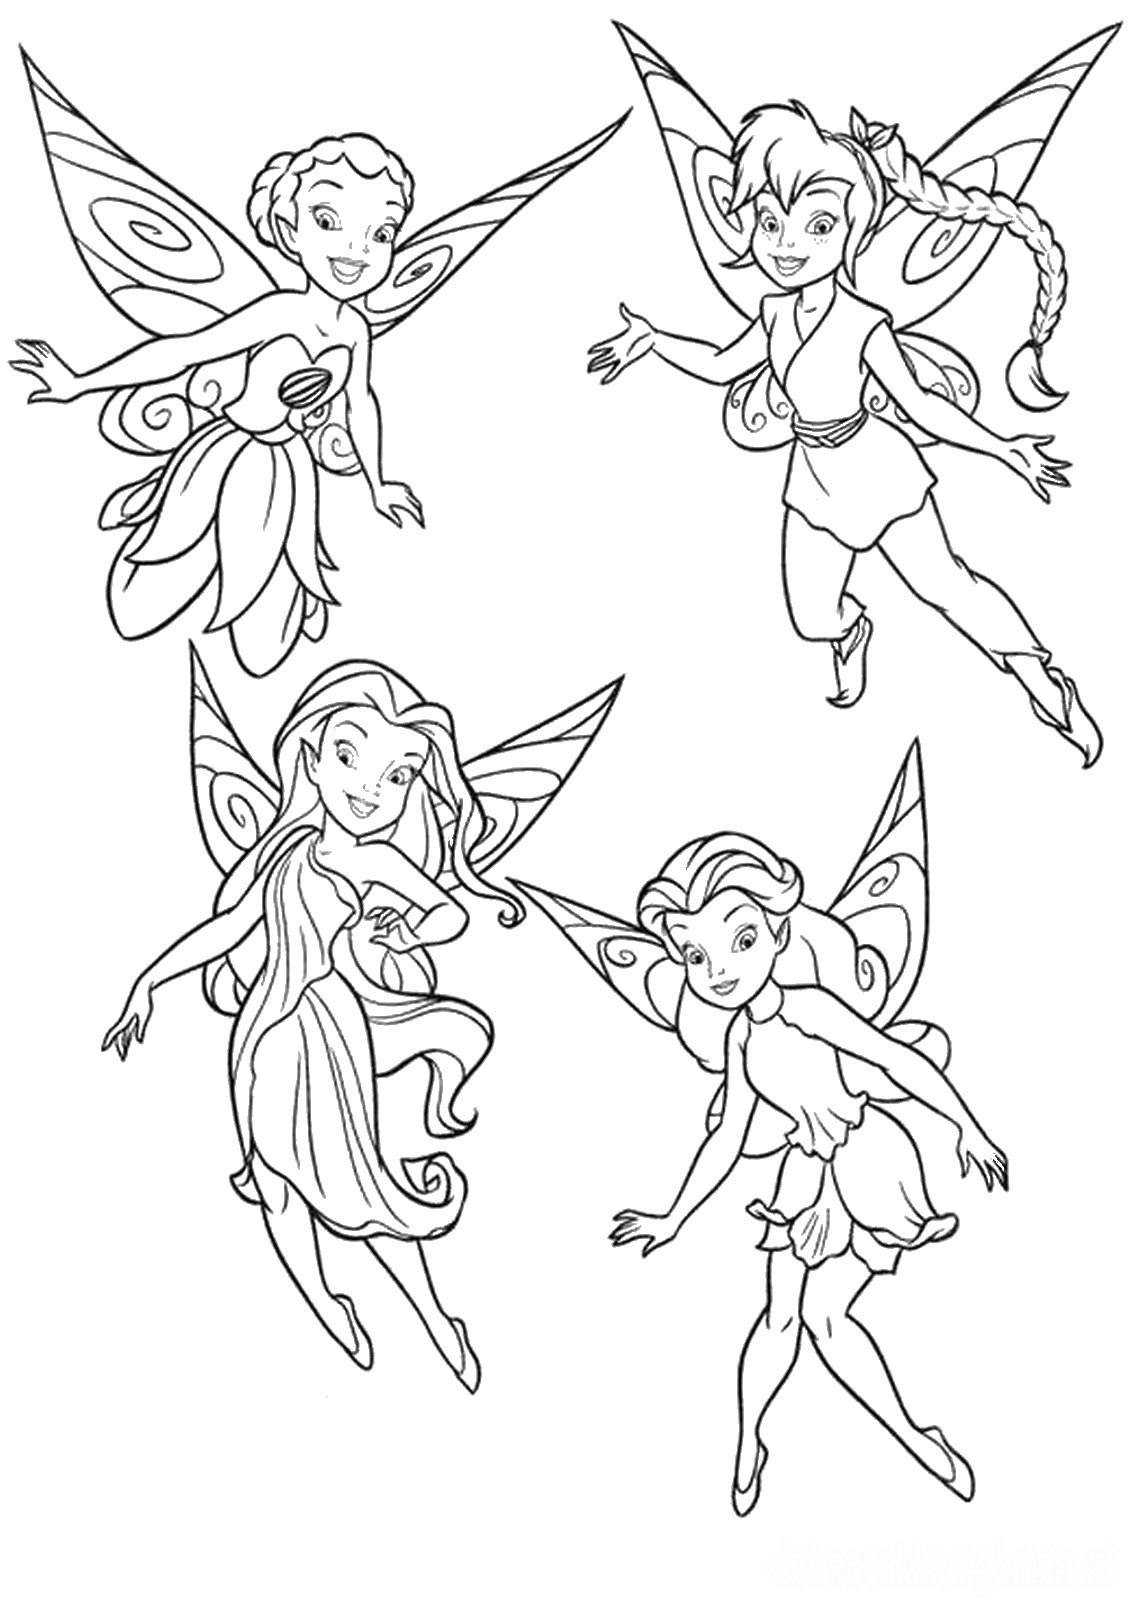 free printable tinkerbell coloring pages tinkerbell printable coloring pages disney pages tinkerbell printable coloring free